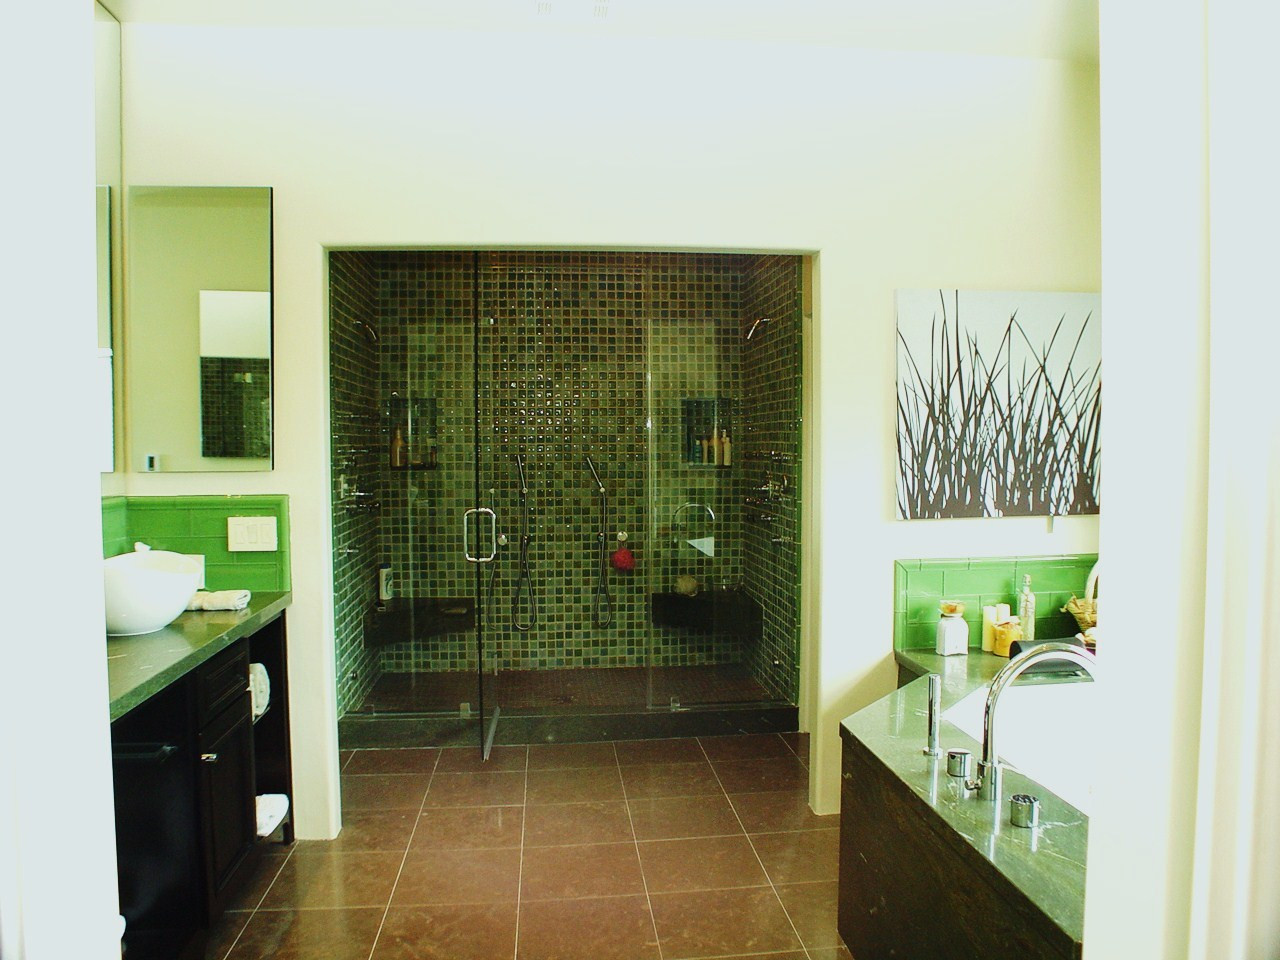 An at home Spa-like Bath design by Elaine Morrison. Body and shower sprays for 2